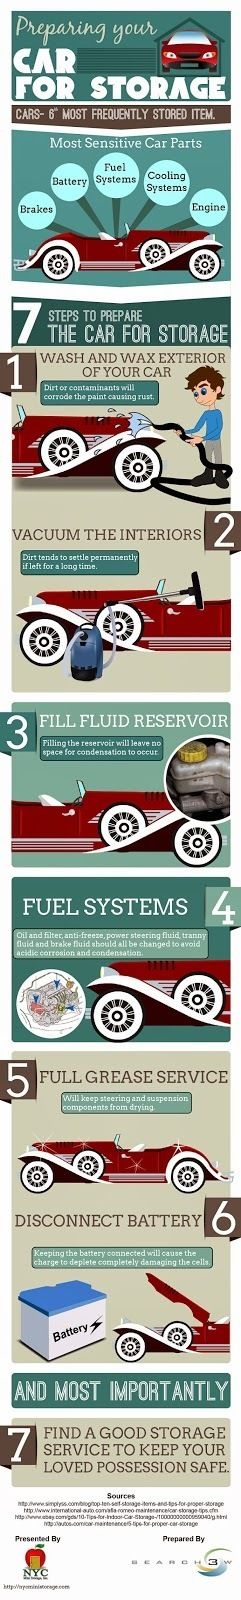 Infographic: Preparing Your Car For Storag | NYC MInistorage | Scoop.it